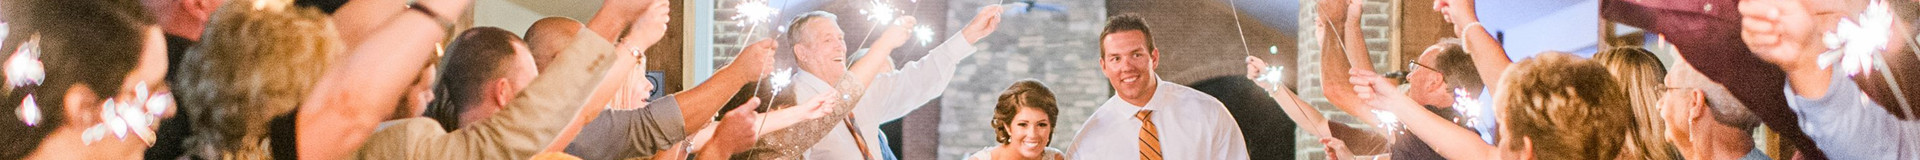 Pricing & Packages | Smith Event Centers